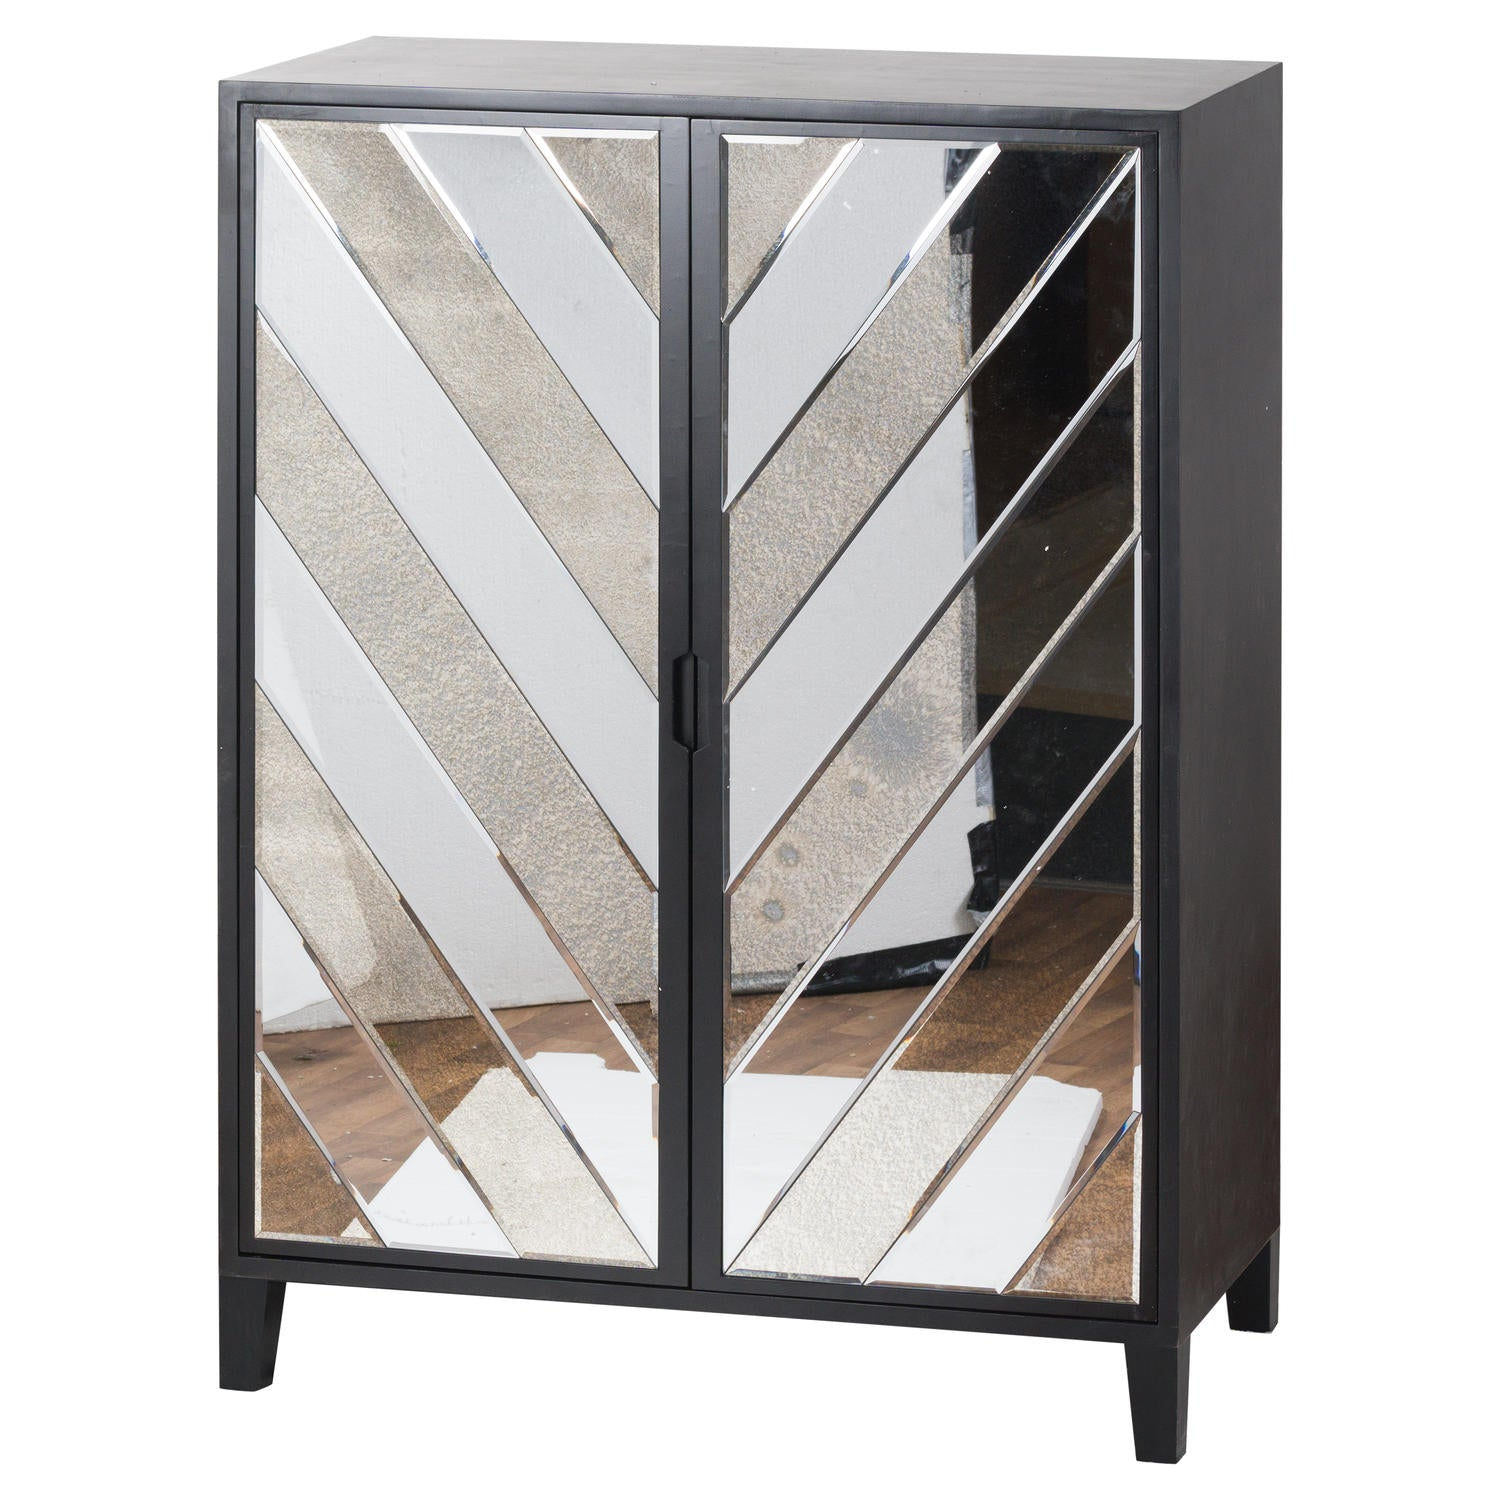 The Soho Black Mirror Collection Large 2 Door Bar